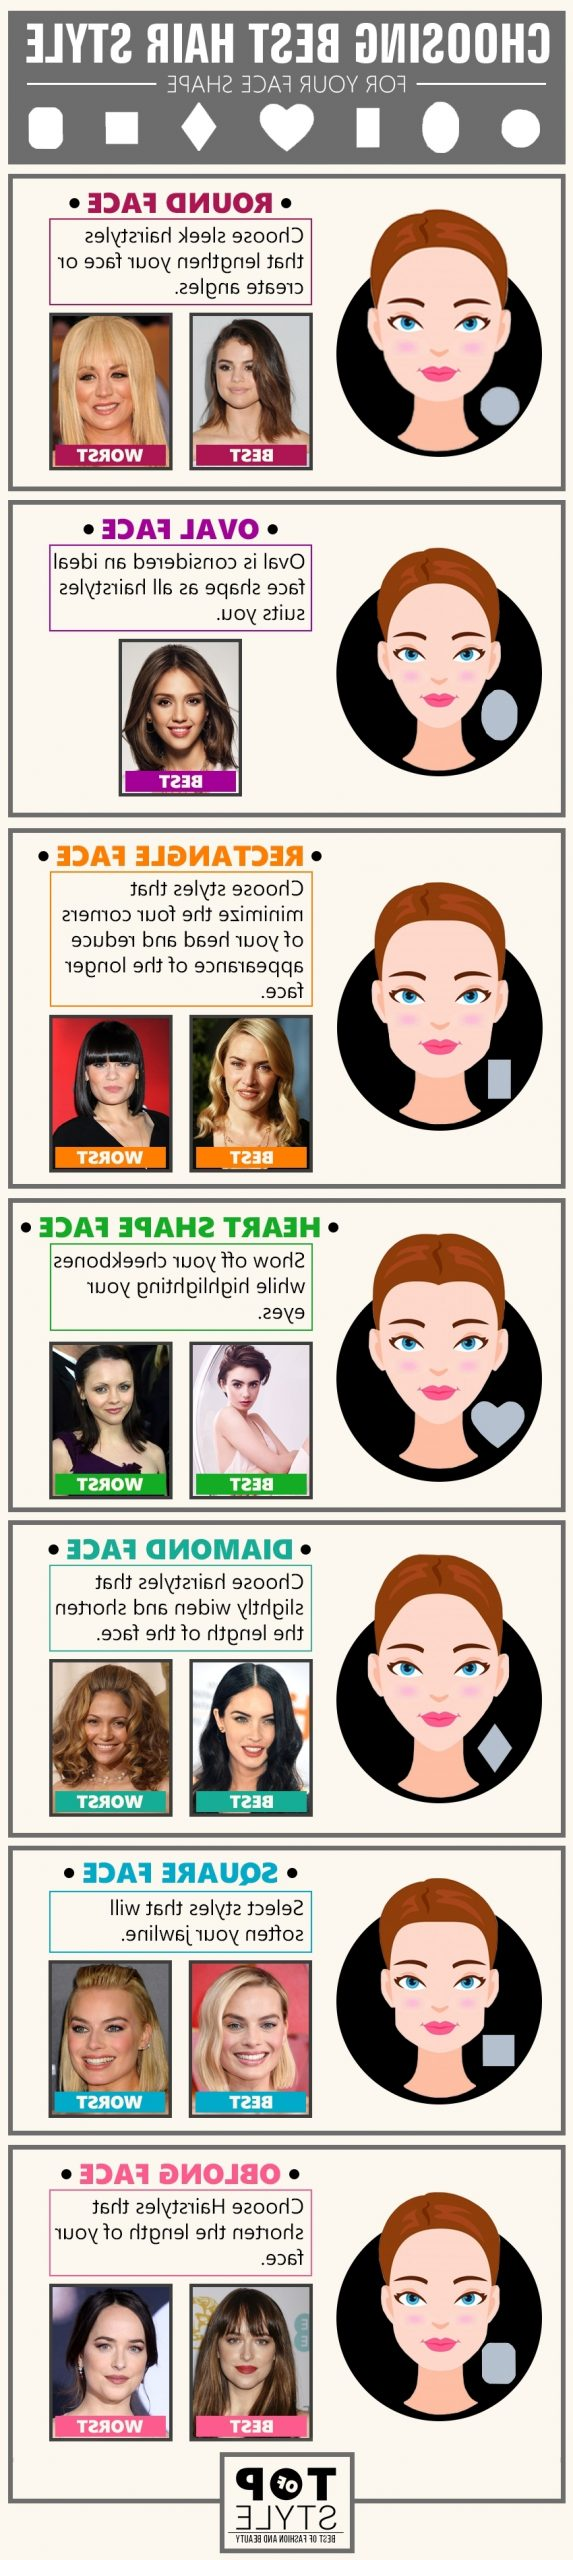 Best & Worst Hairstyles For Different Face Shapes Of Women Medium Length Hairstyles For Diamond Shaped Face